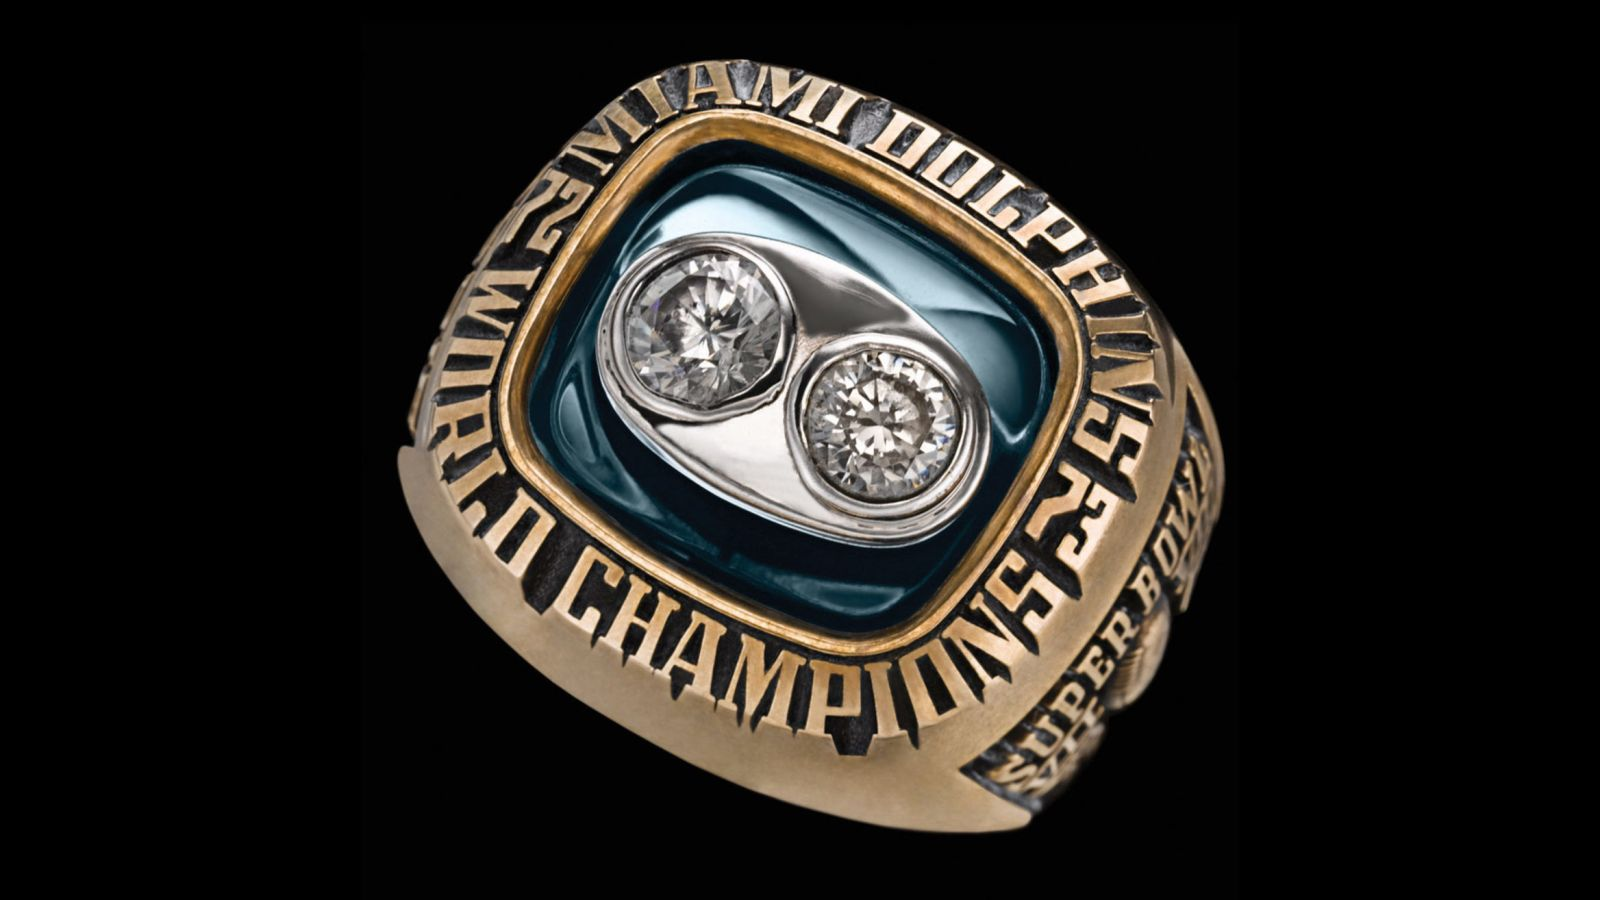 1973 Miami Dolphins Super Bowl Championship Ring